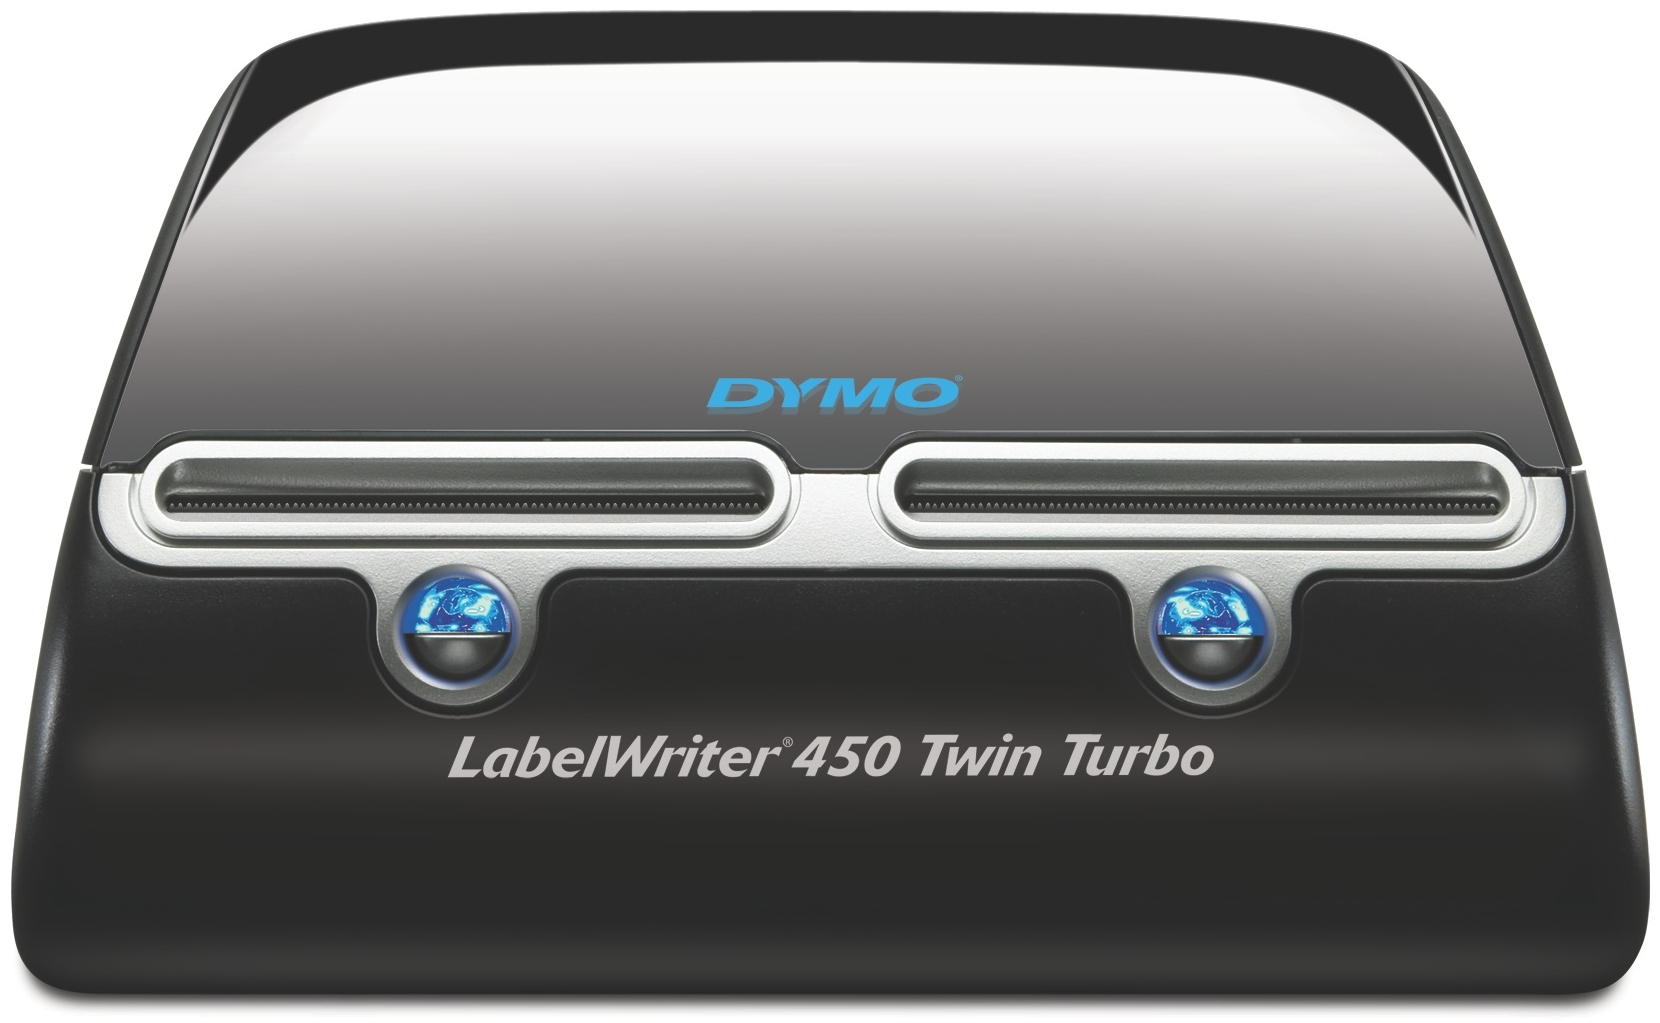 DYMO LABELWRITER 450 TWIN TURBO DRIVER WINDOWS 7 (2019)